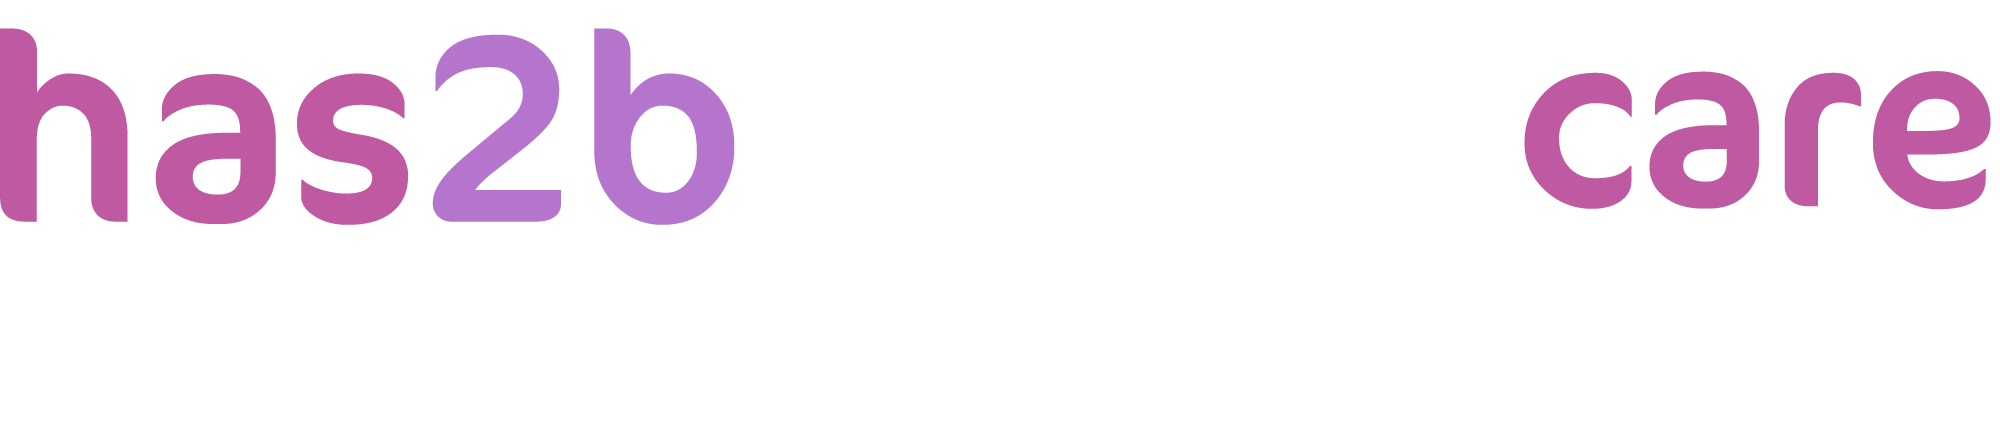 Has2bhappy